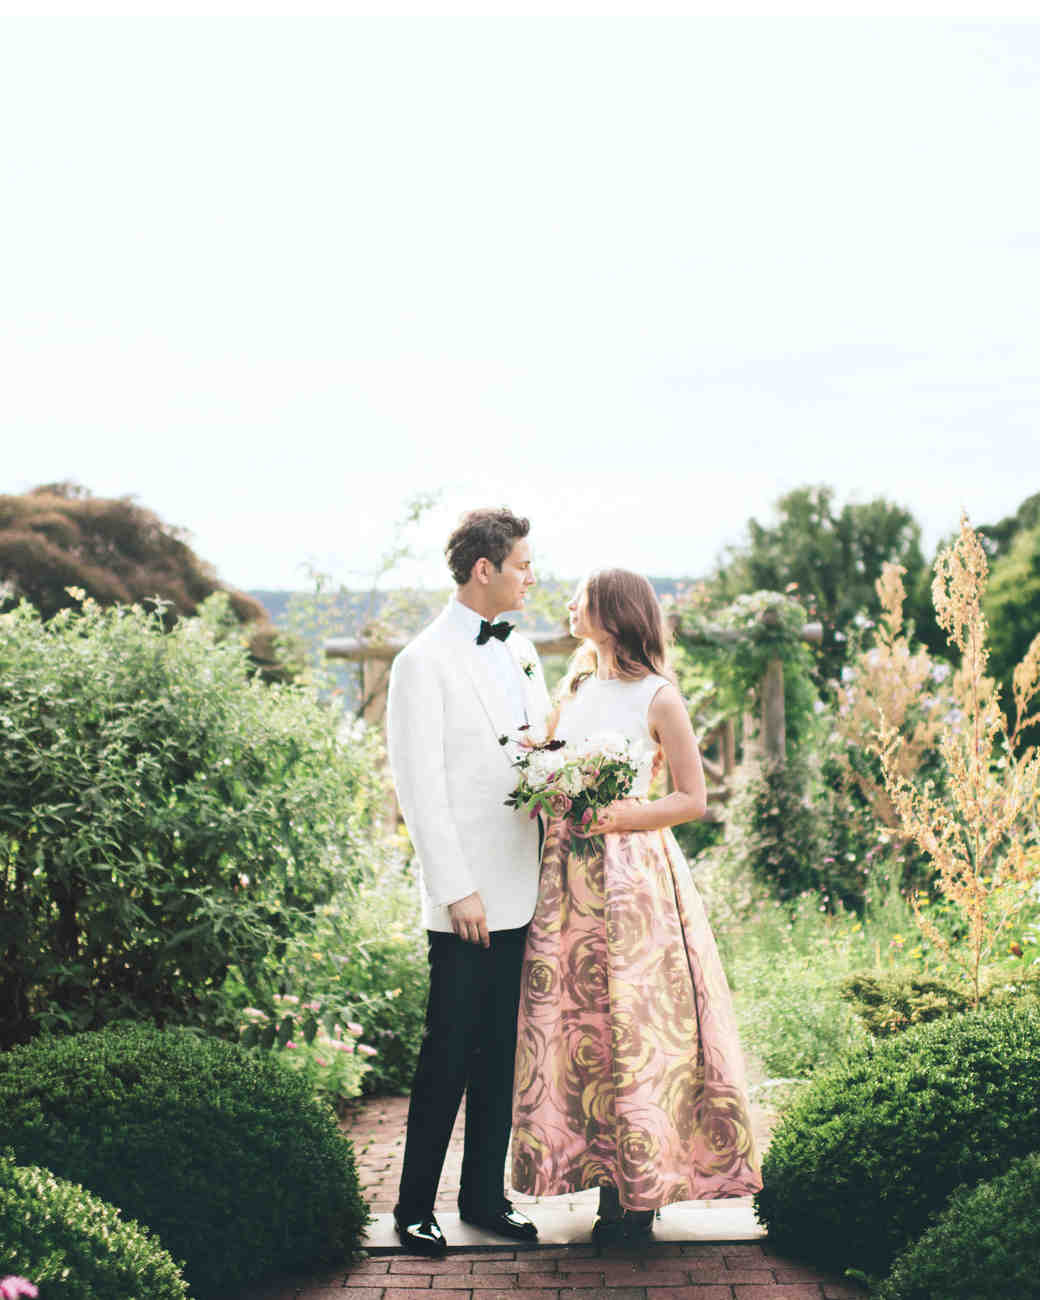 Fashionable wedding styles. Organizing a wedding with your own hands: photos and ideas for the perfect celebration 97